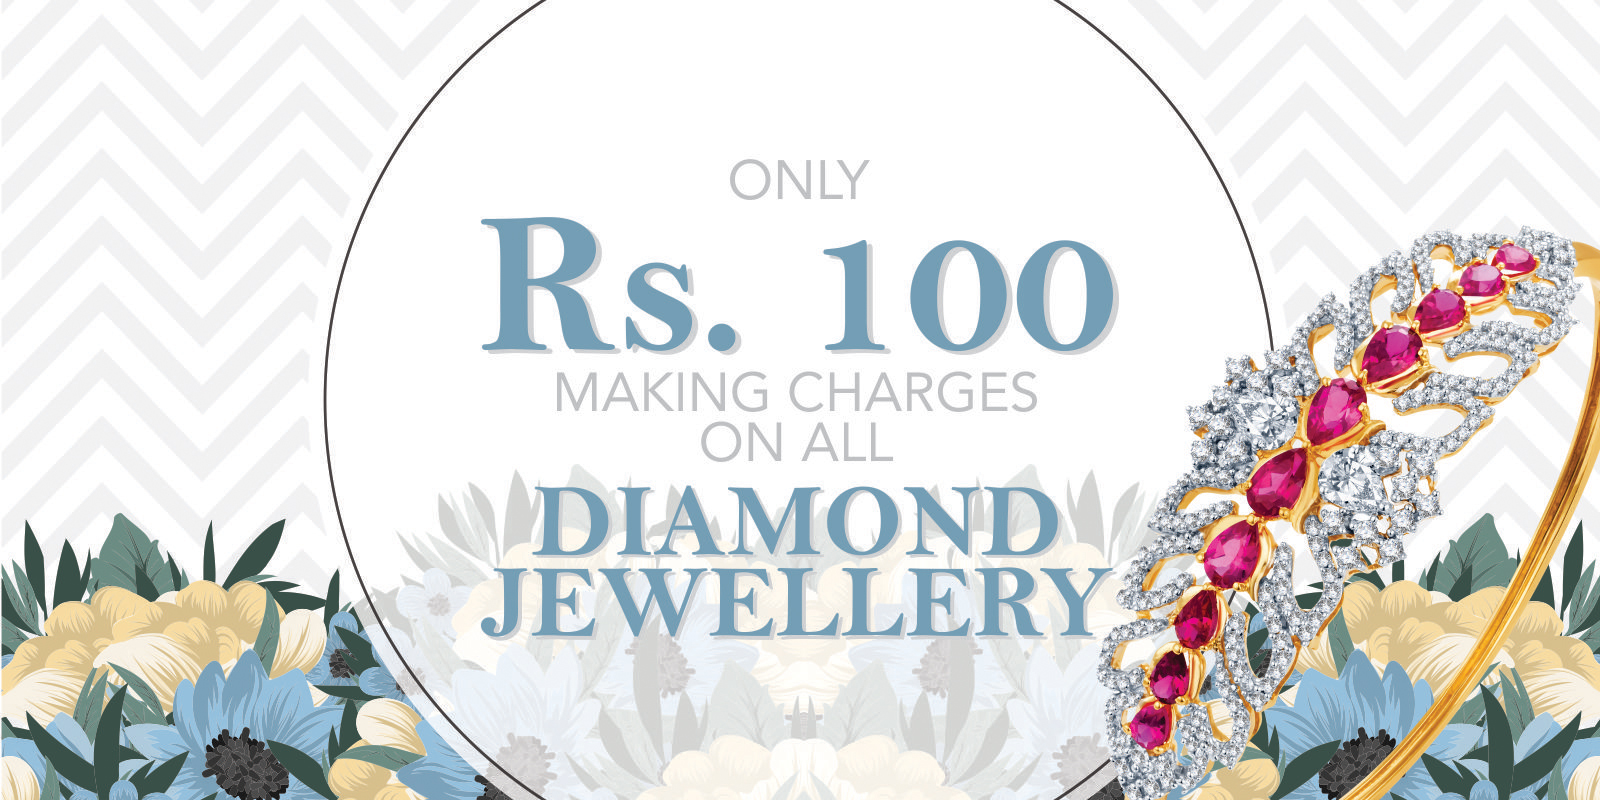 Rs. 100 Making Charges on all Diamond Jewellery.